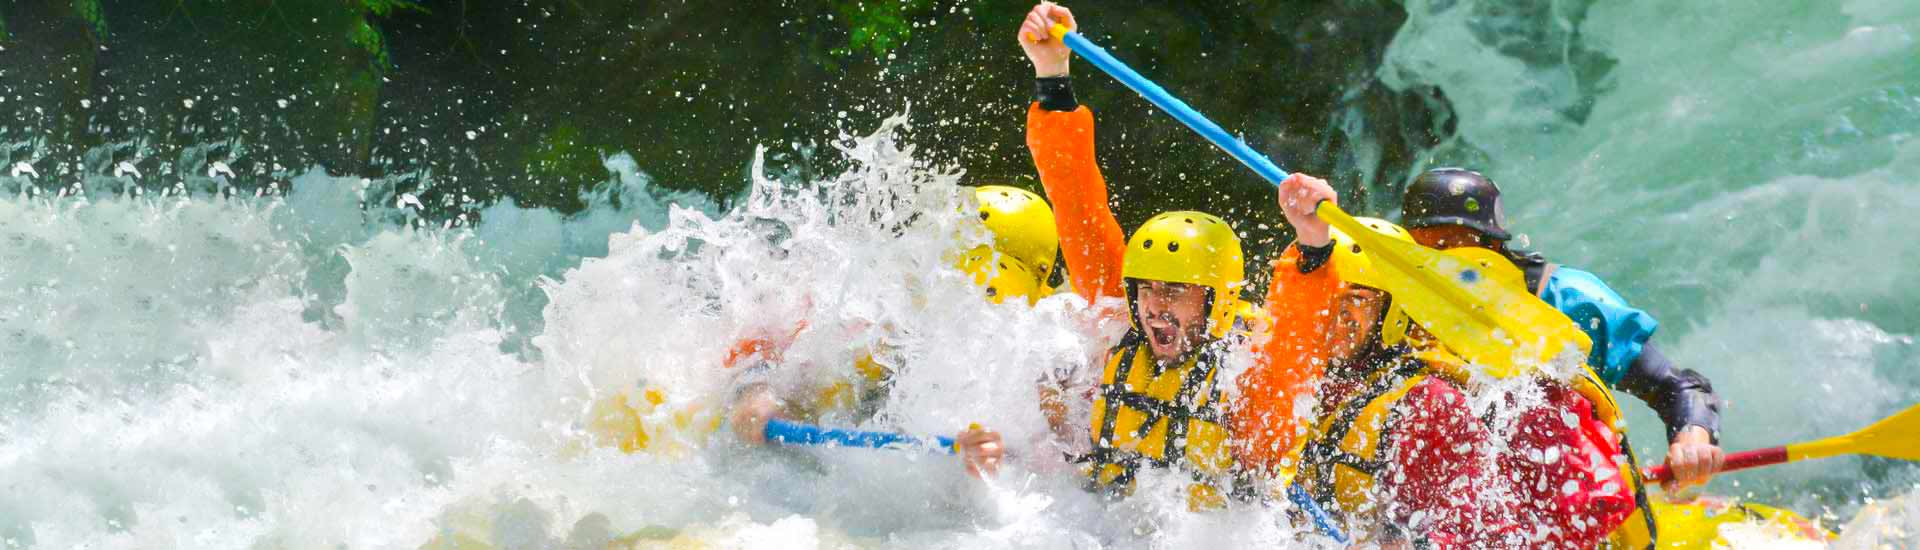 Rafting in Umbria presso Rafting Marmore